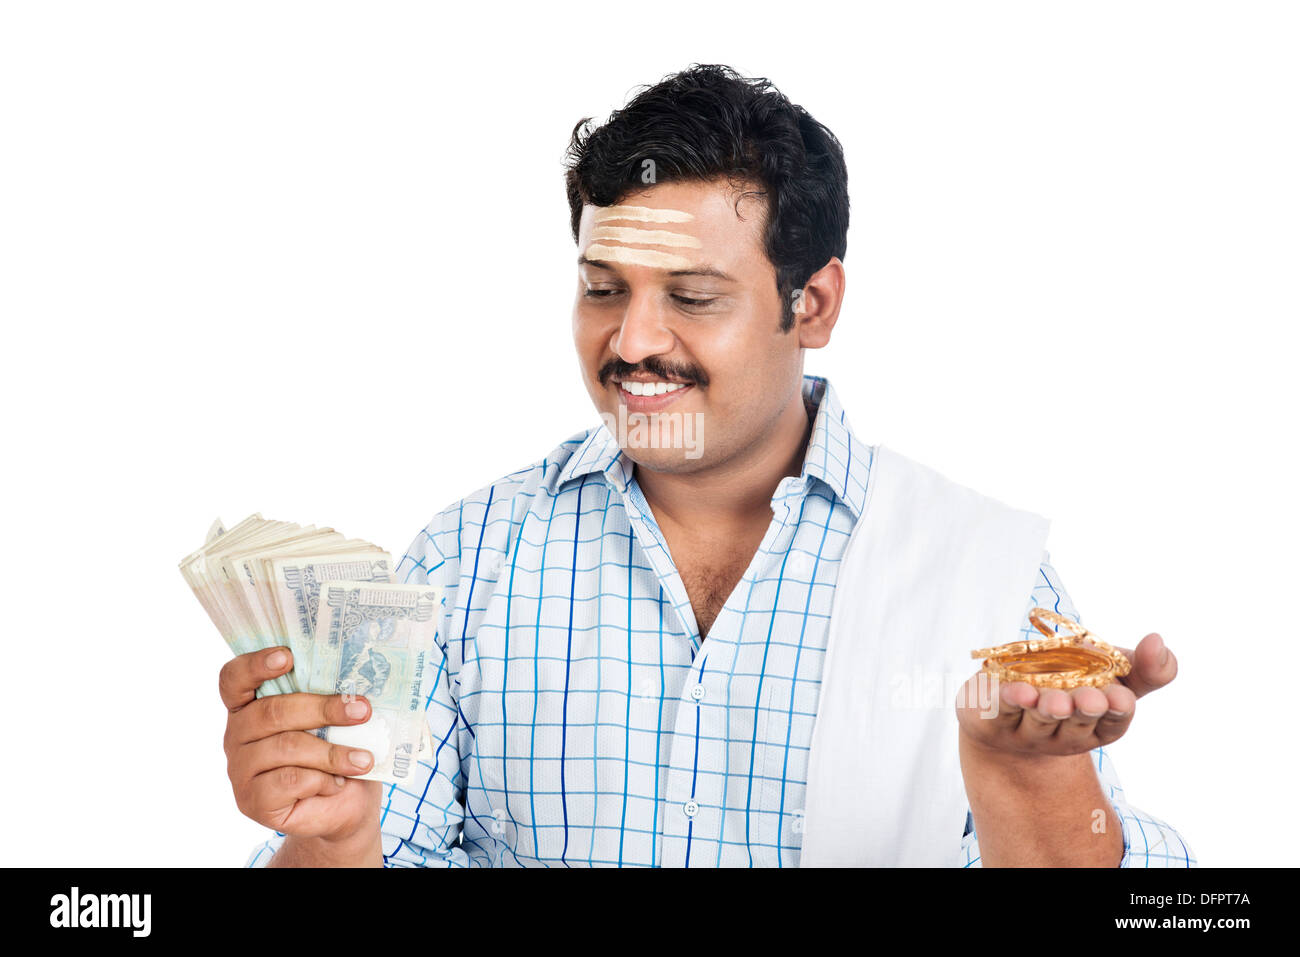 South Indian man holding money and gold bangle - Stock Image